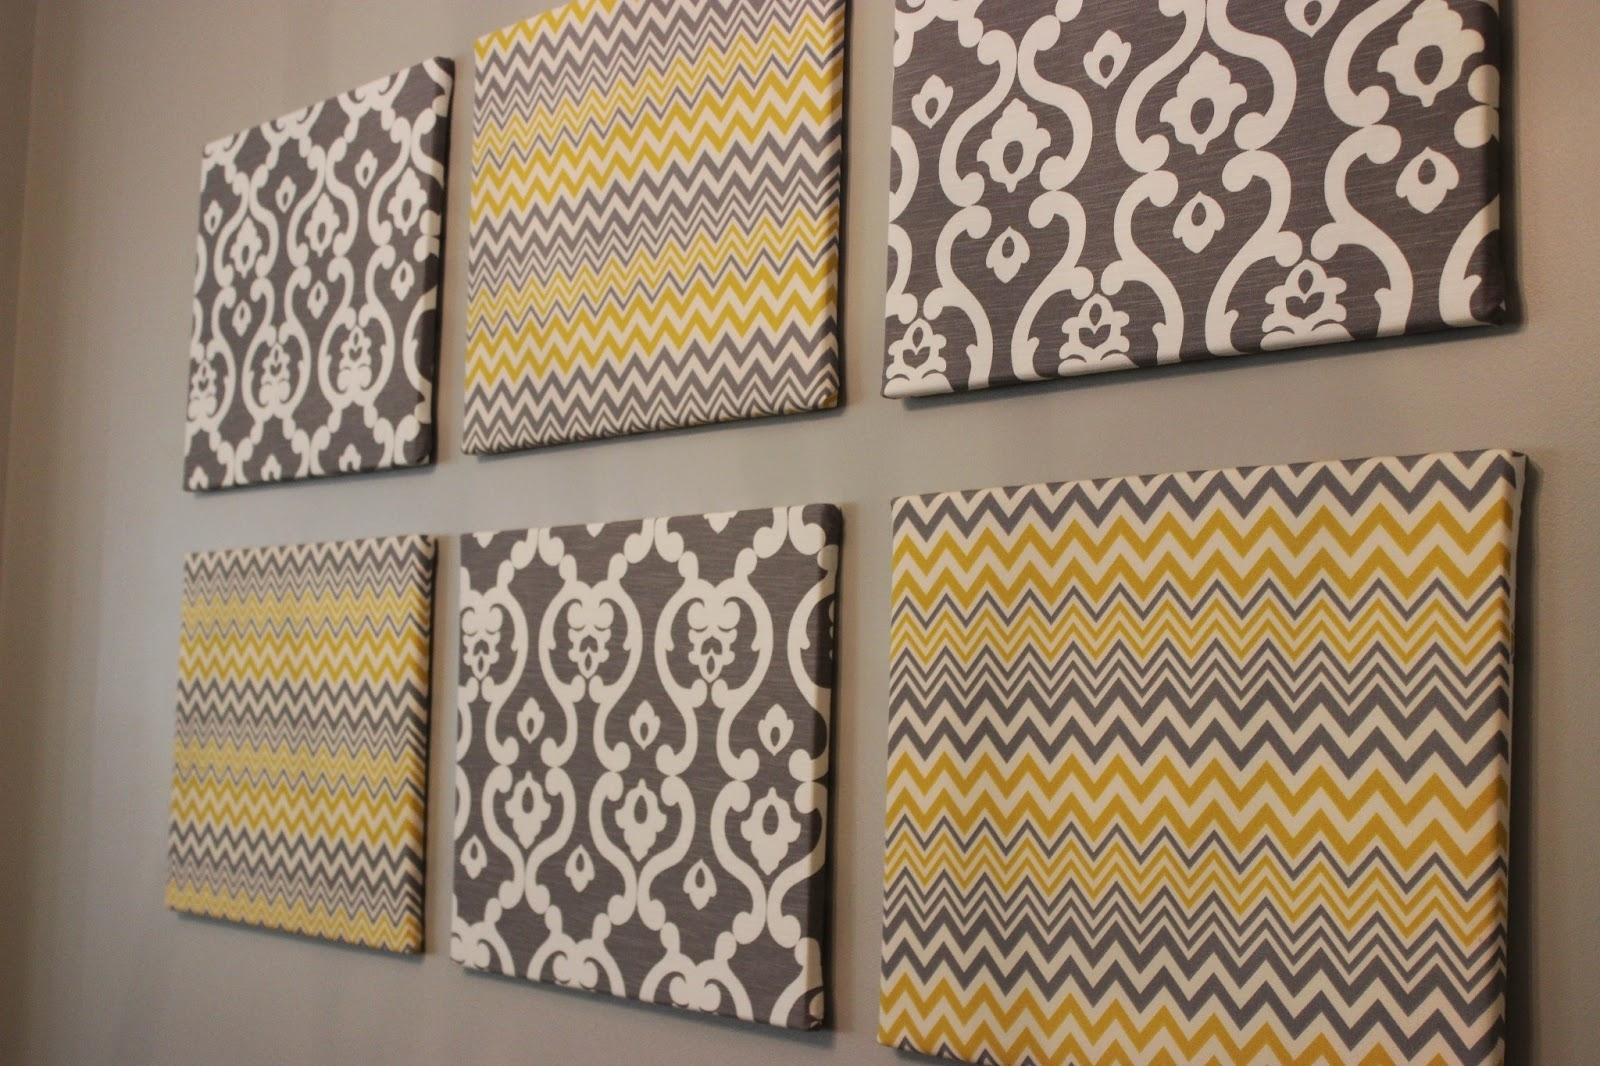 Art: Diy Canvas Wall Art Ideas Pertaining To 2018 Fabric For Canvas Wall Art (View 10 of 15)